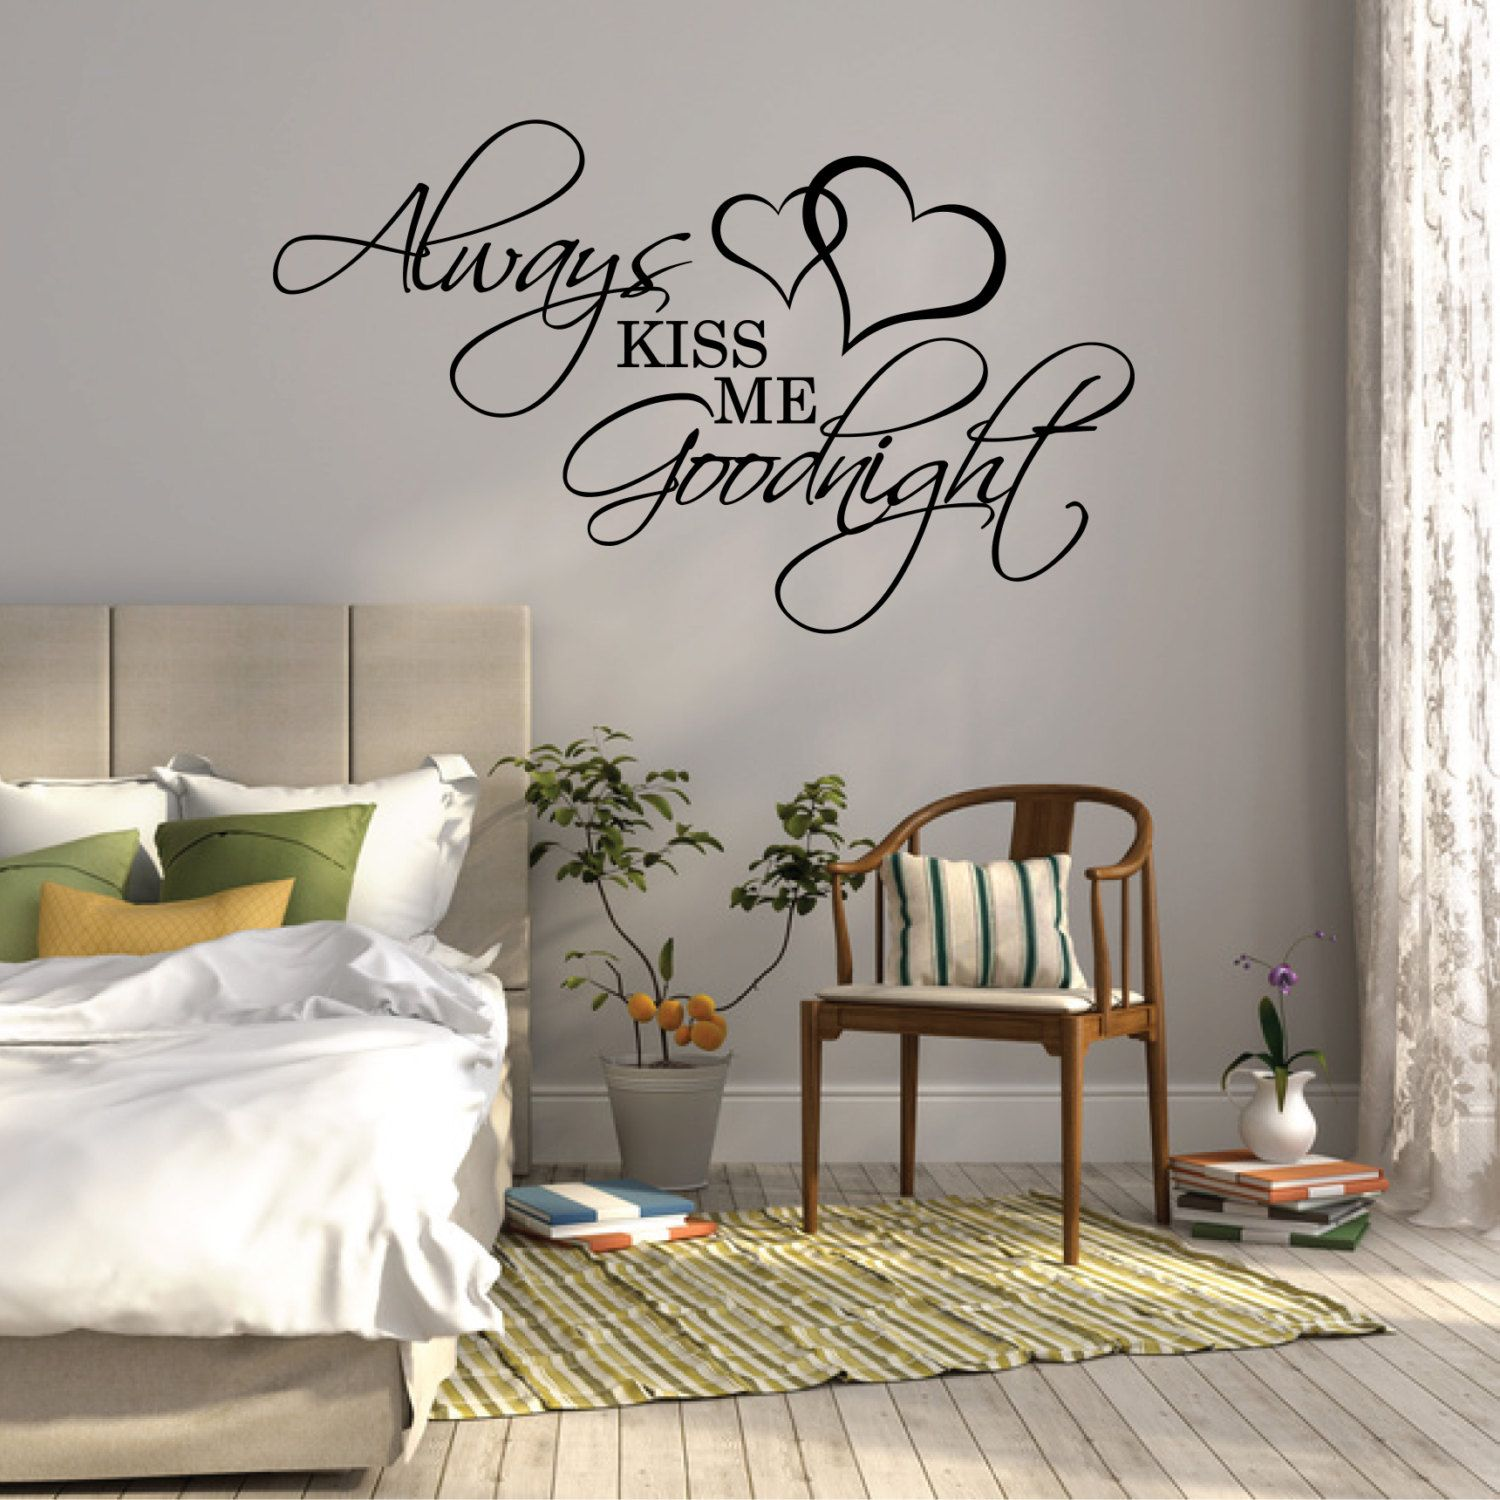 Wall Art Decals For Living Room: Wall Sticker Quote- Always KISS ME Goodnight